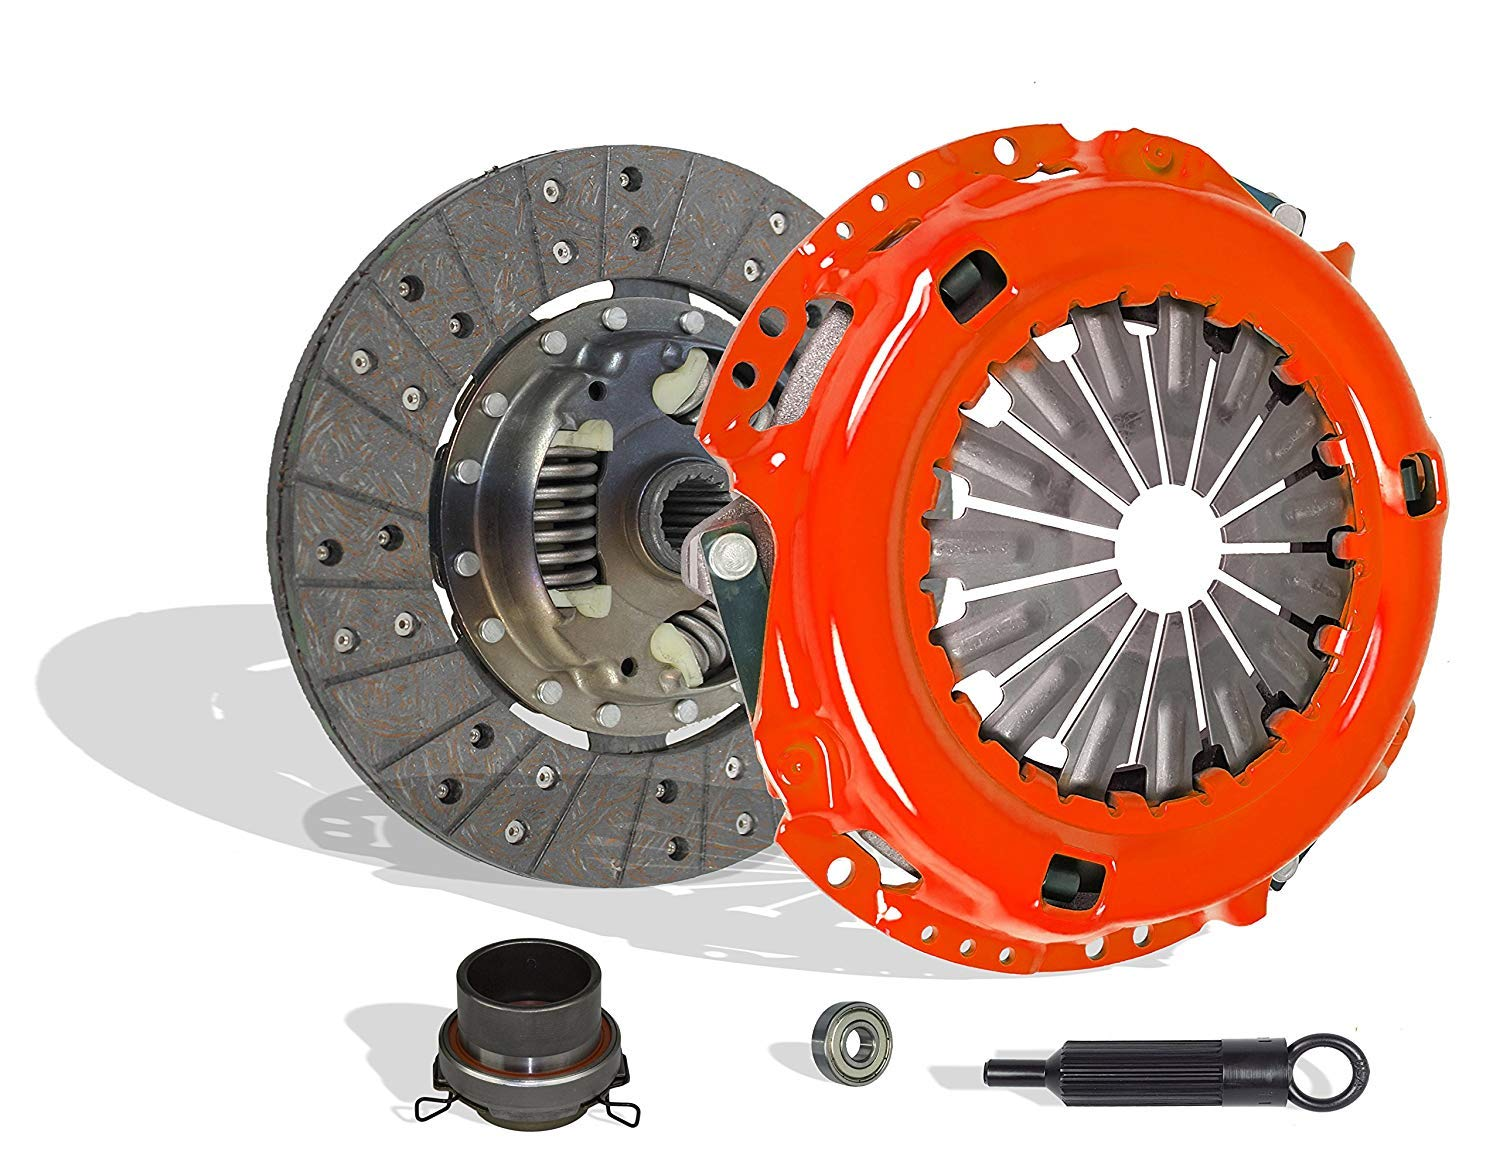 Clutch Kit works with Toyota T100 Tacoma 4Runner Tundra Base Pre Runner S-Runner SR5 Limited Dlx One-Ton Extended Sport 1995-2004 3.4L V6 GAS DOHC (Stage 1; 2Wd; 4Wd)